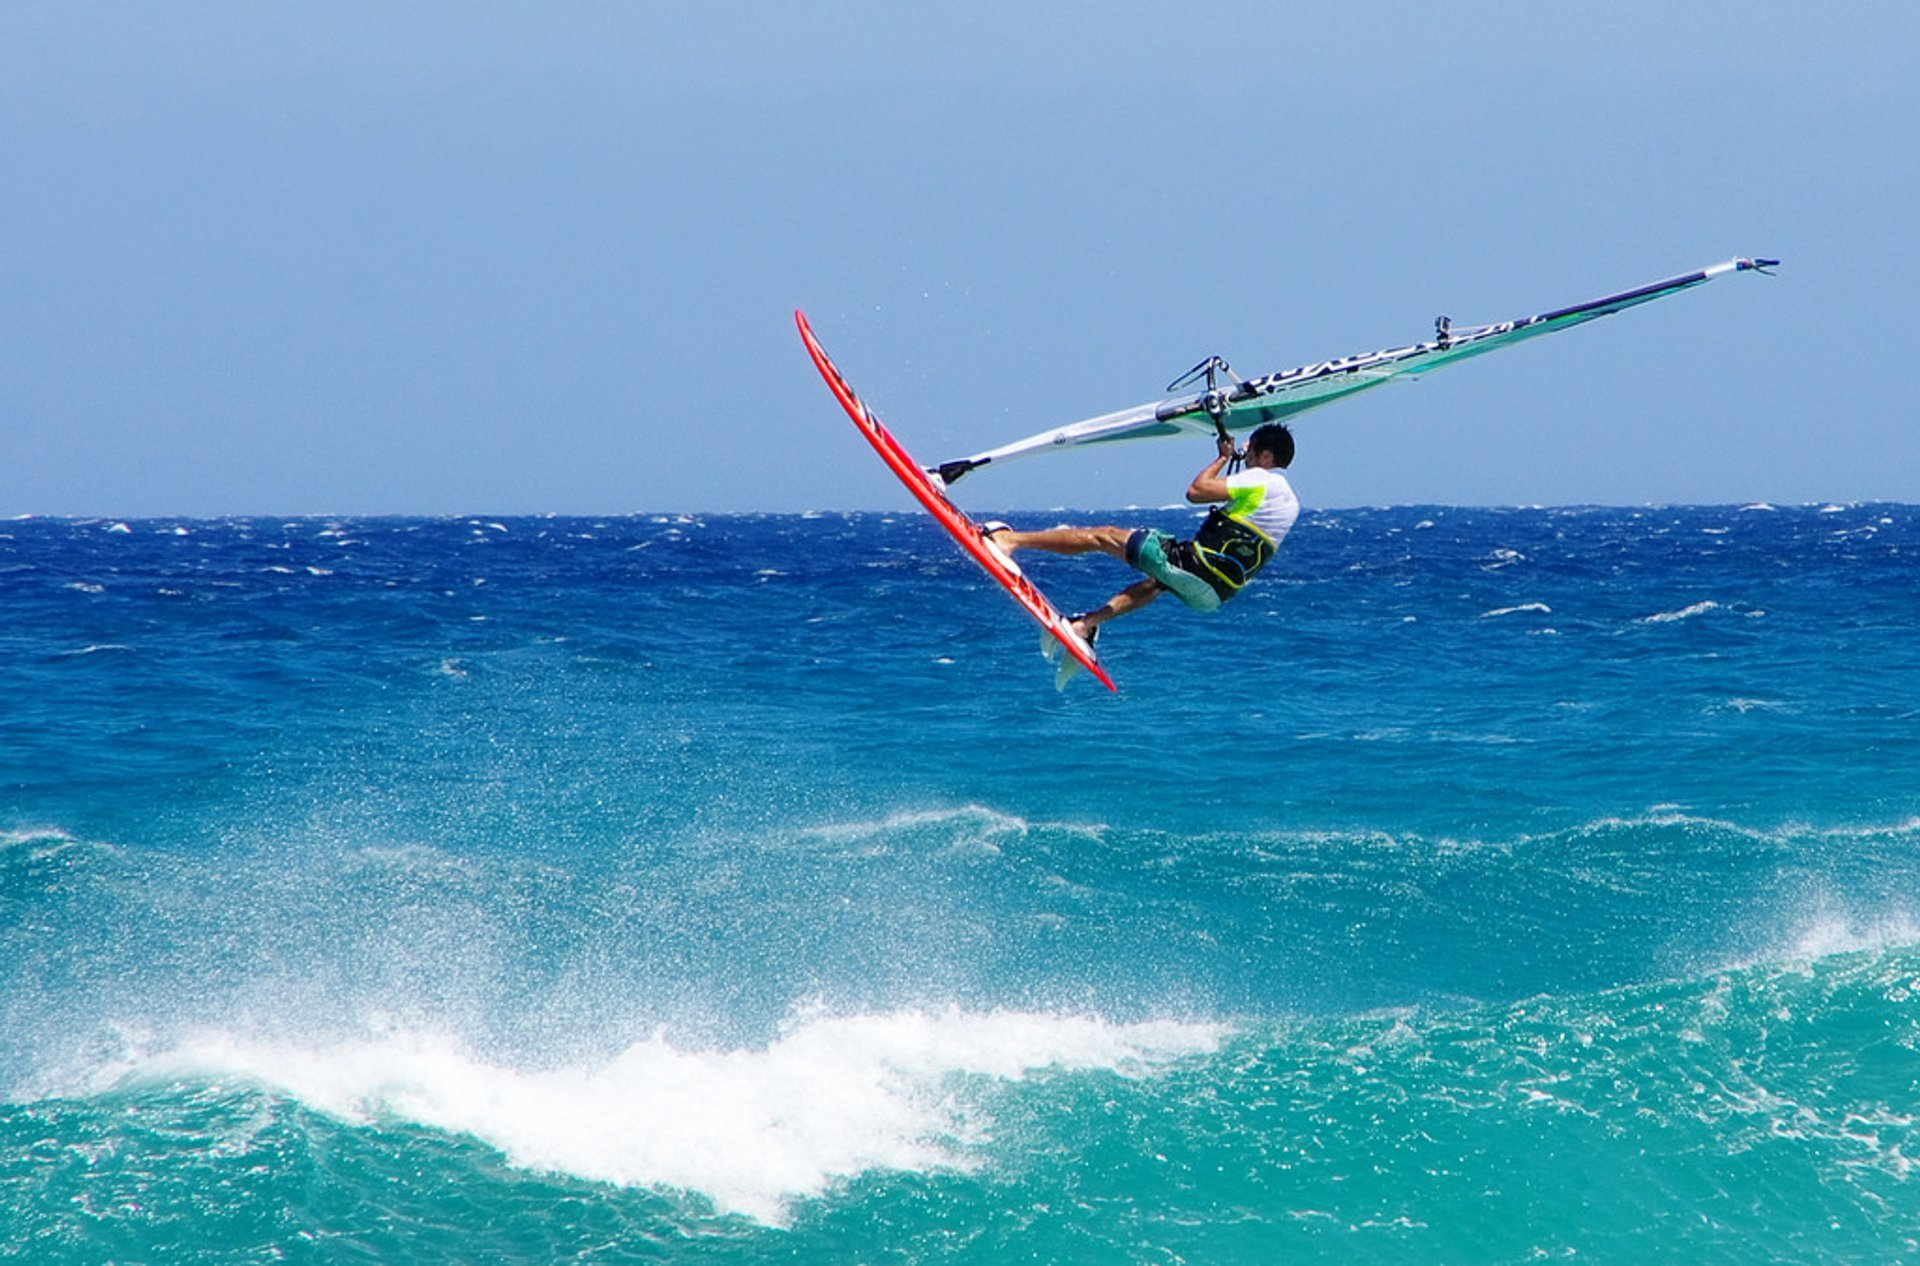 Kite and Windsurfing in Corsica 2020 - Best Time